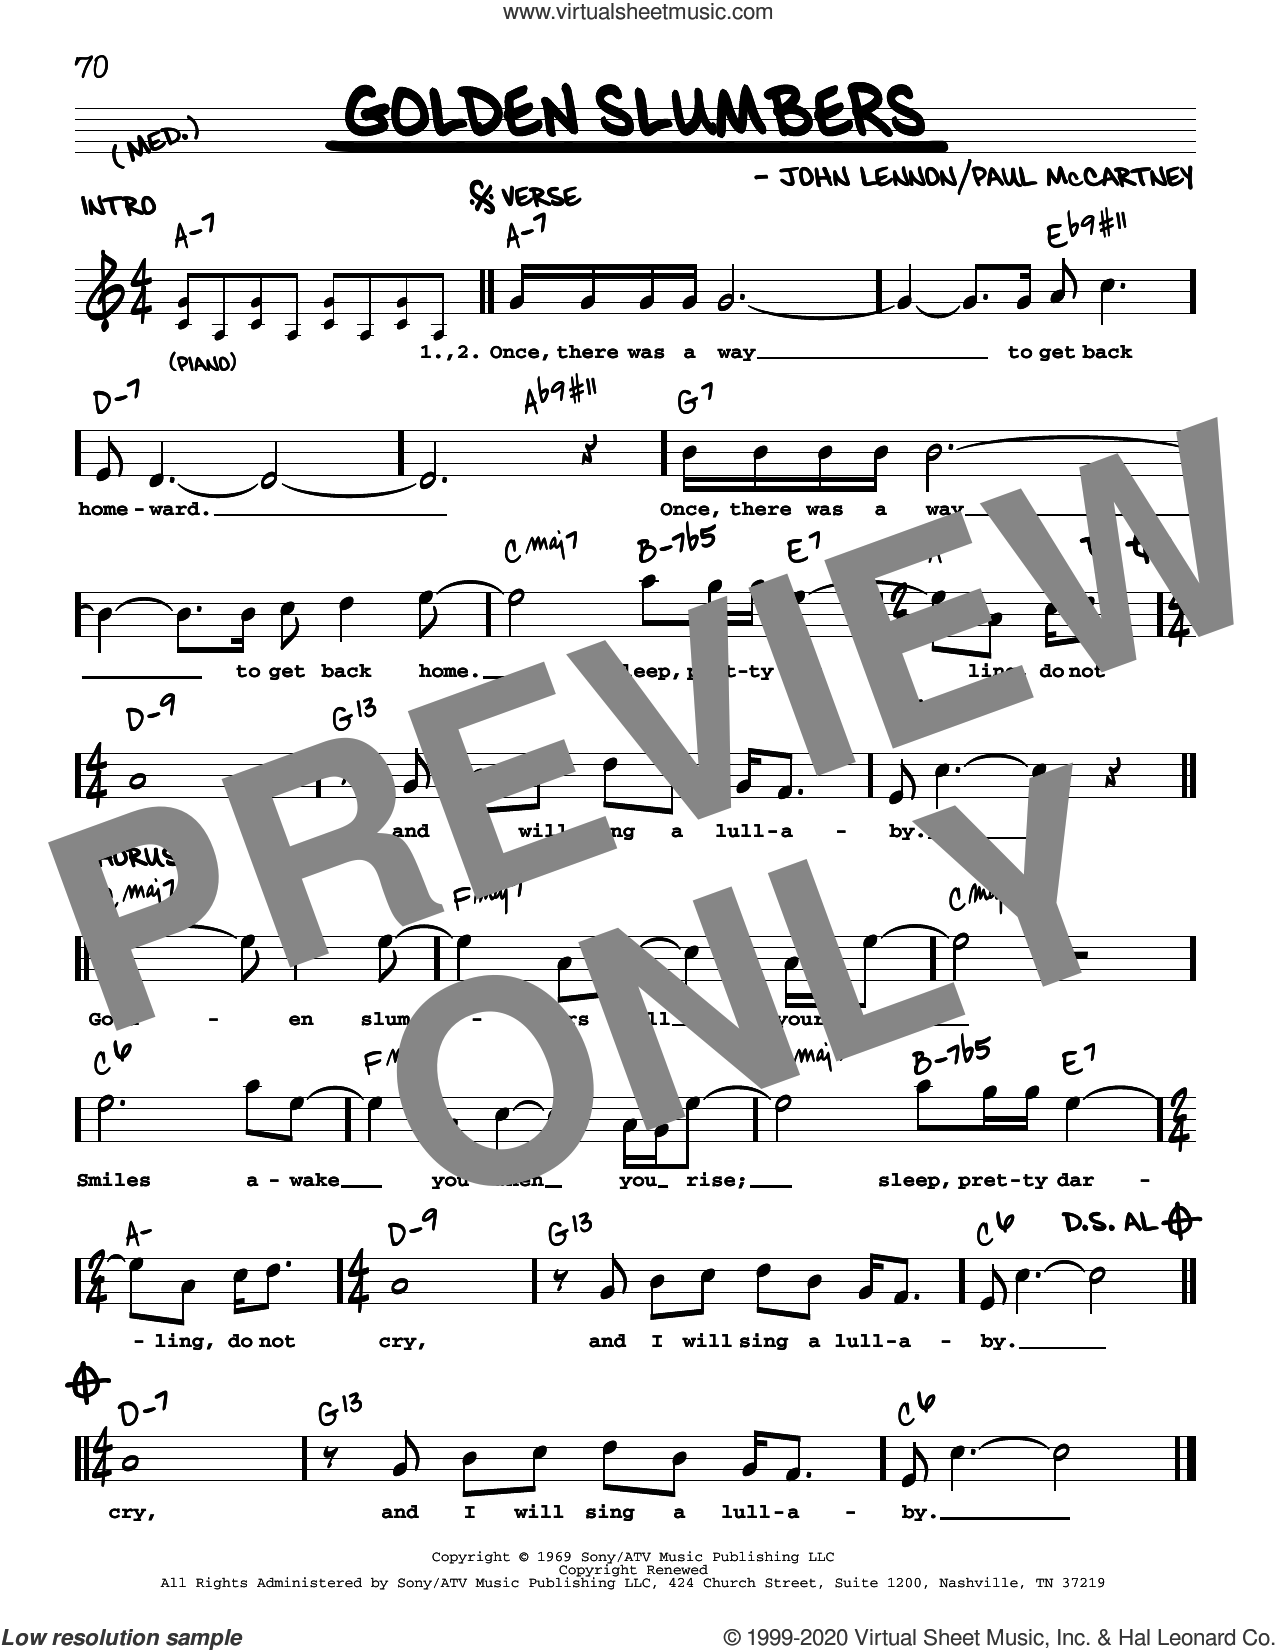 Golden Slumbers [Jazz version] sheet music for voice and other instruments (real book with lyrics) by The Beatles, John Lennon and Paul McCartney, intermediate skill level